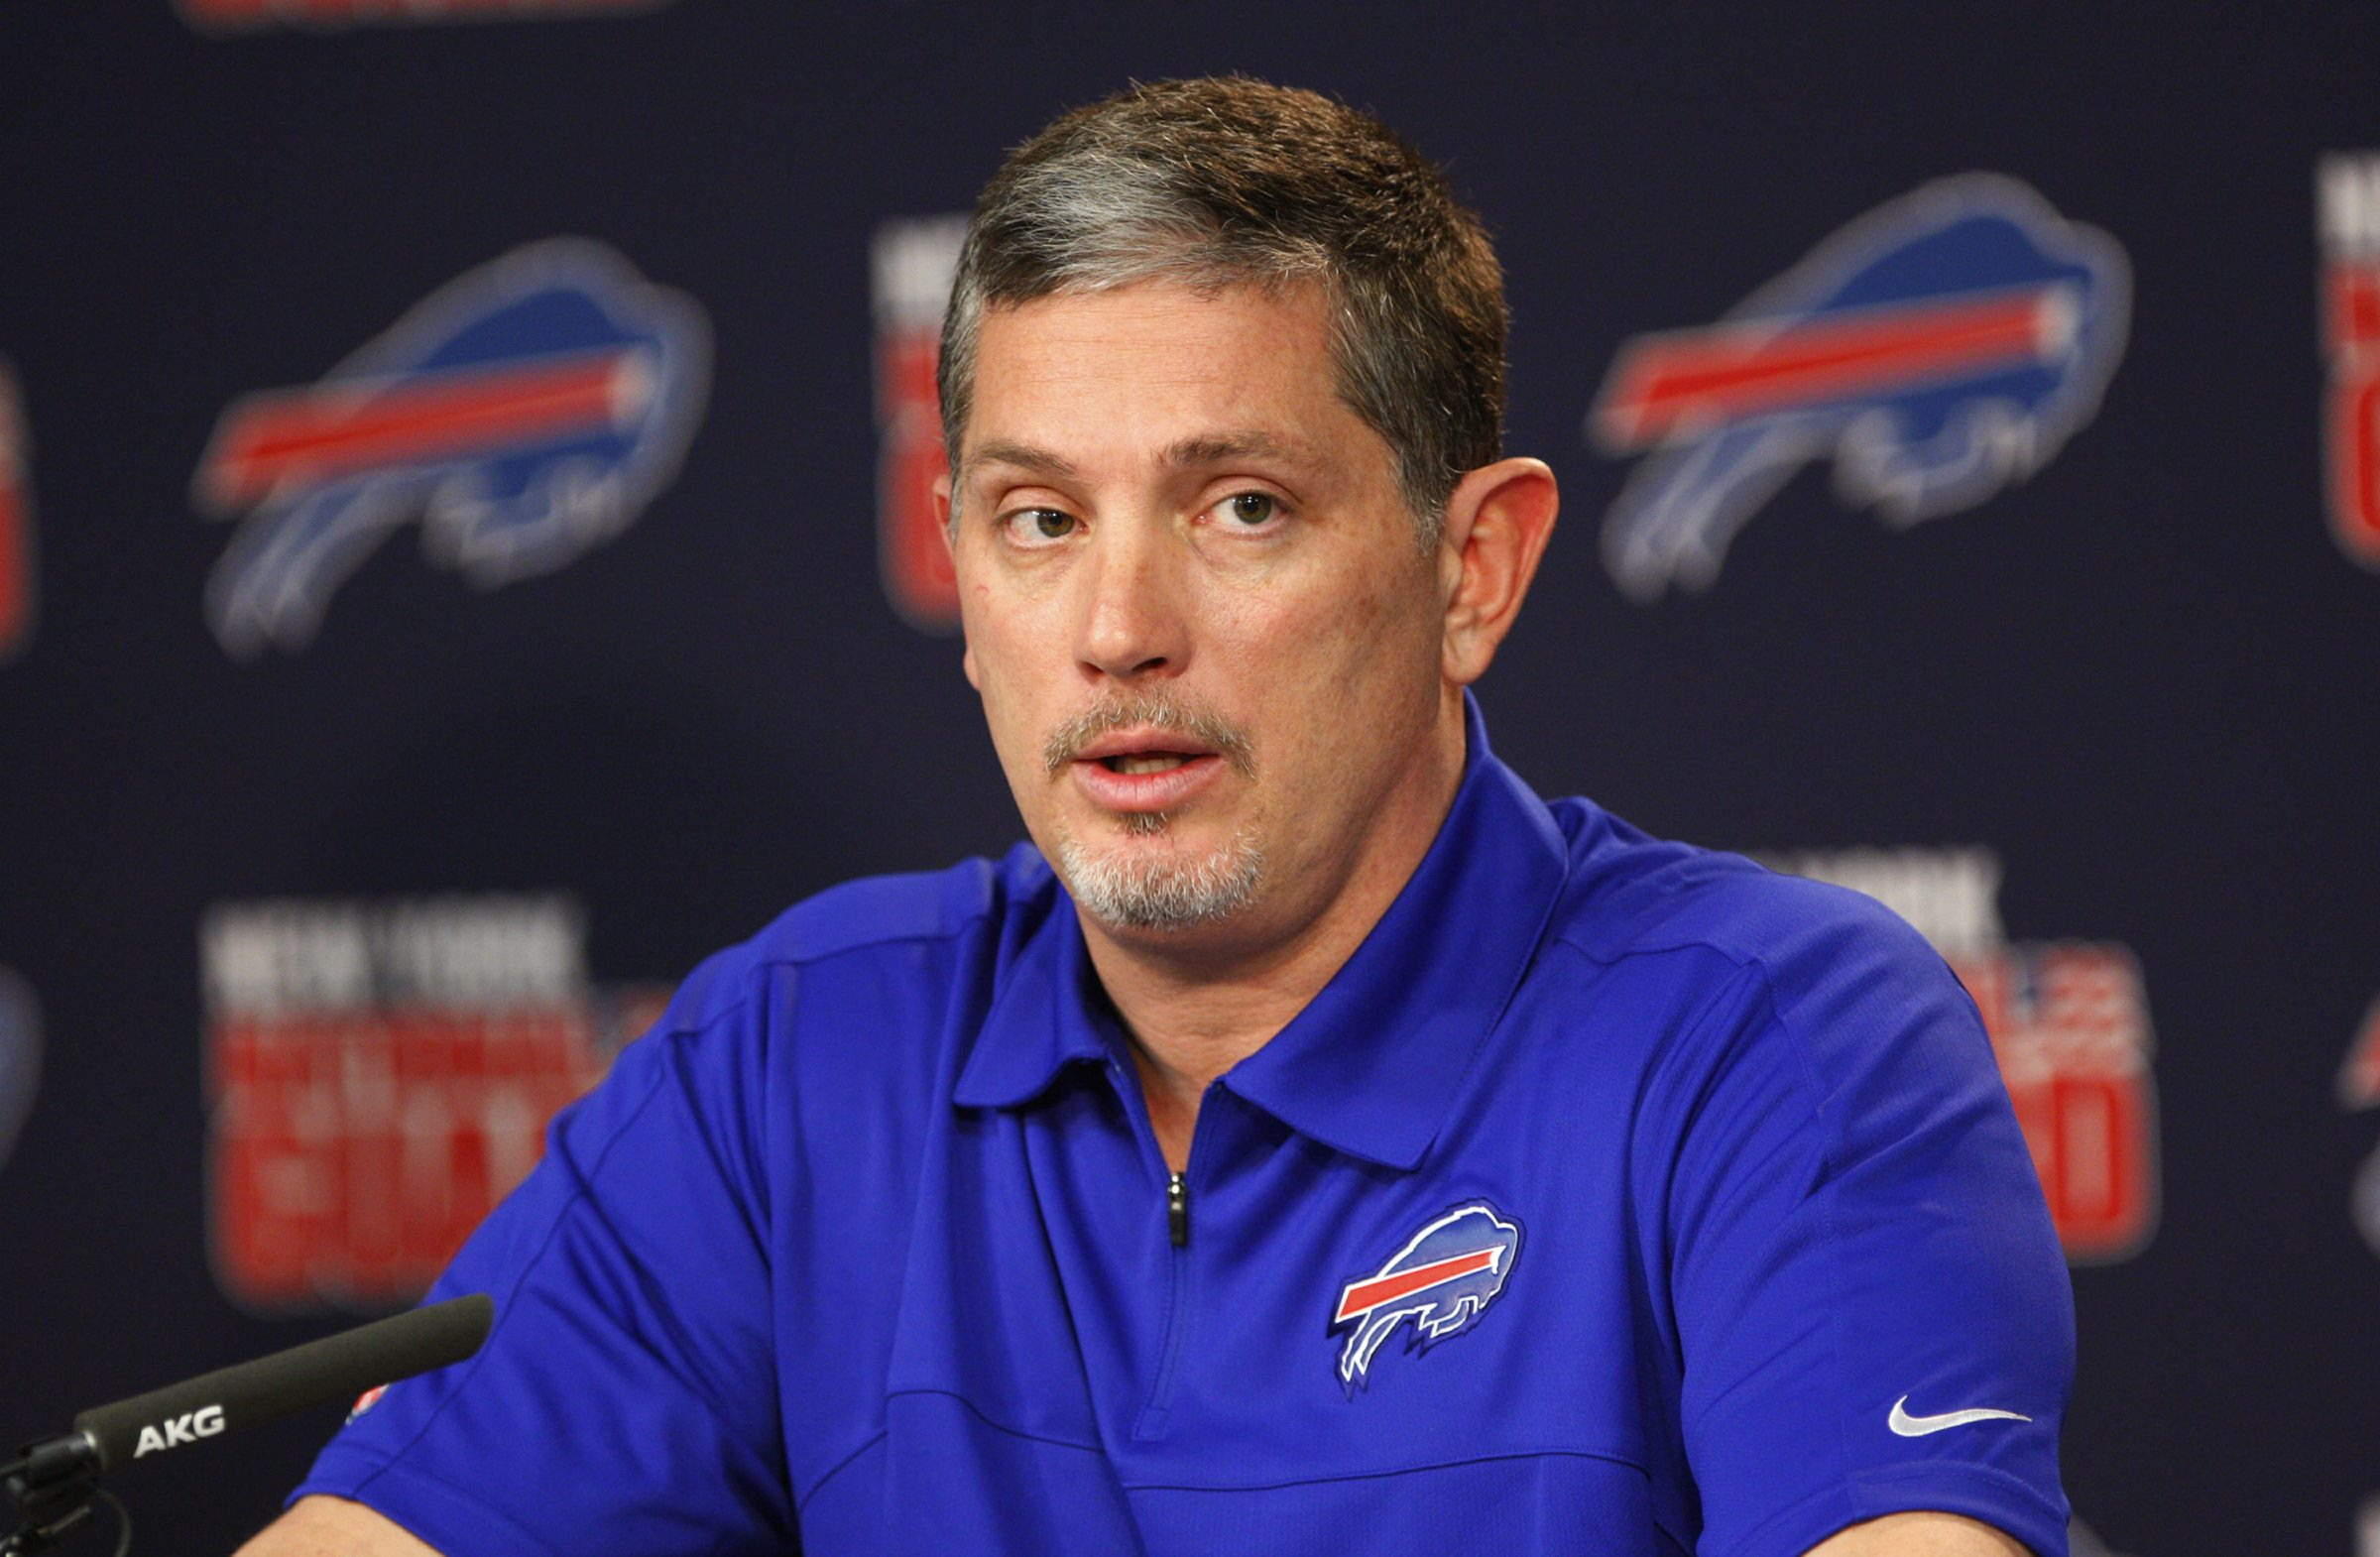 """""""This is a tremendous opportunity for a defensive coordinator,"""" said Jim Schwartz. """"There are some real positives we can build on here."""" (Harry Scull Jr./Buffalo News)"""